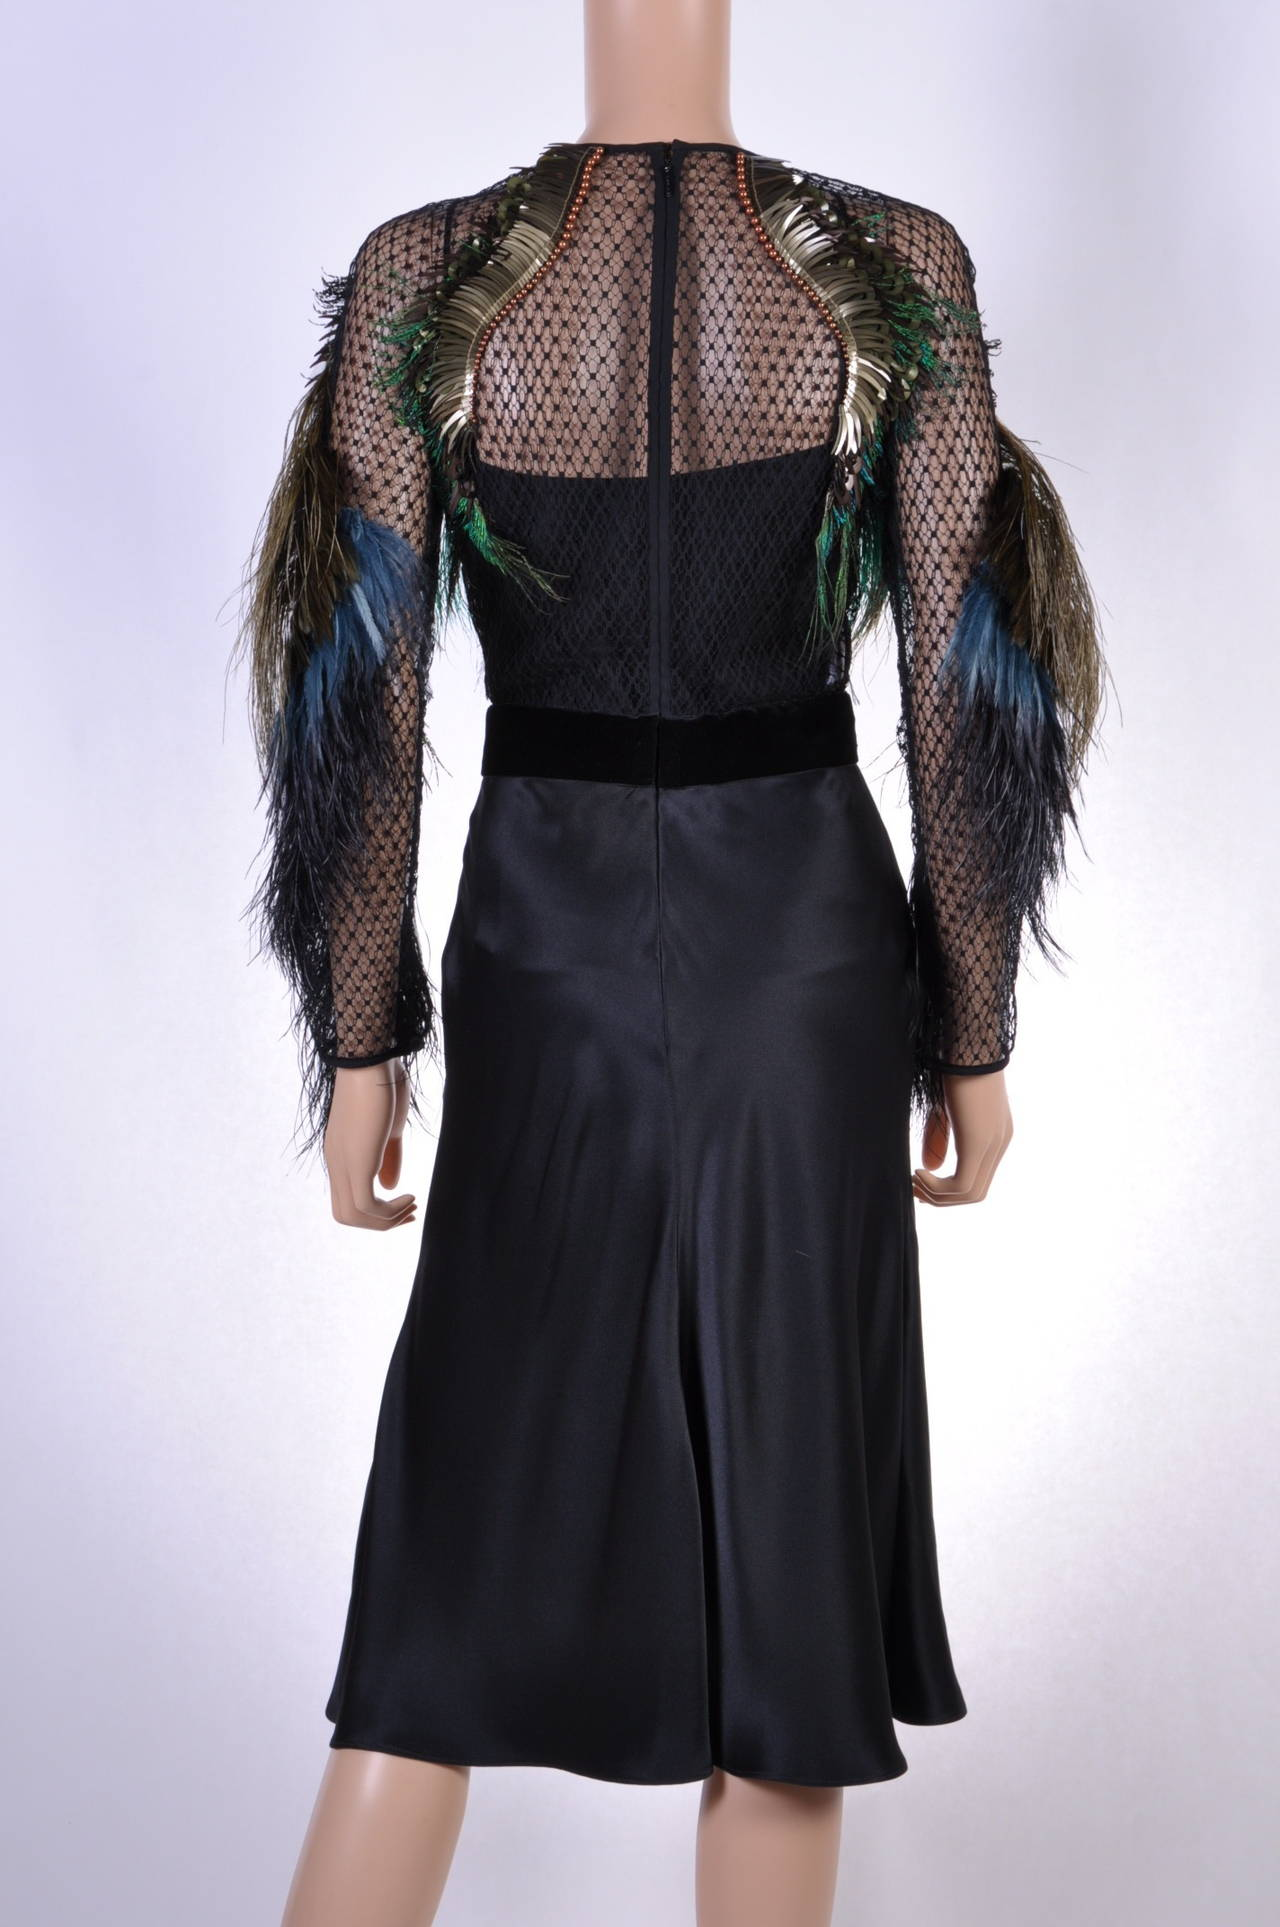 Gucci Feather Embroidered Evening Dress For Sale 2